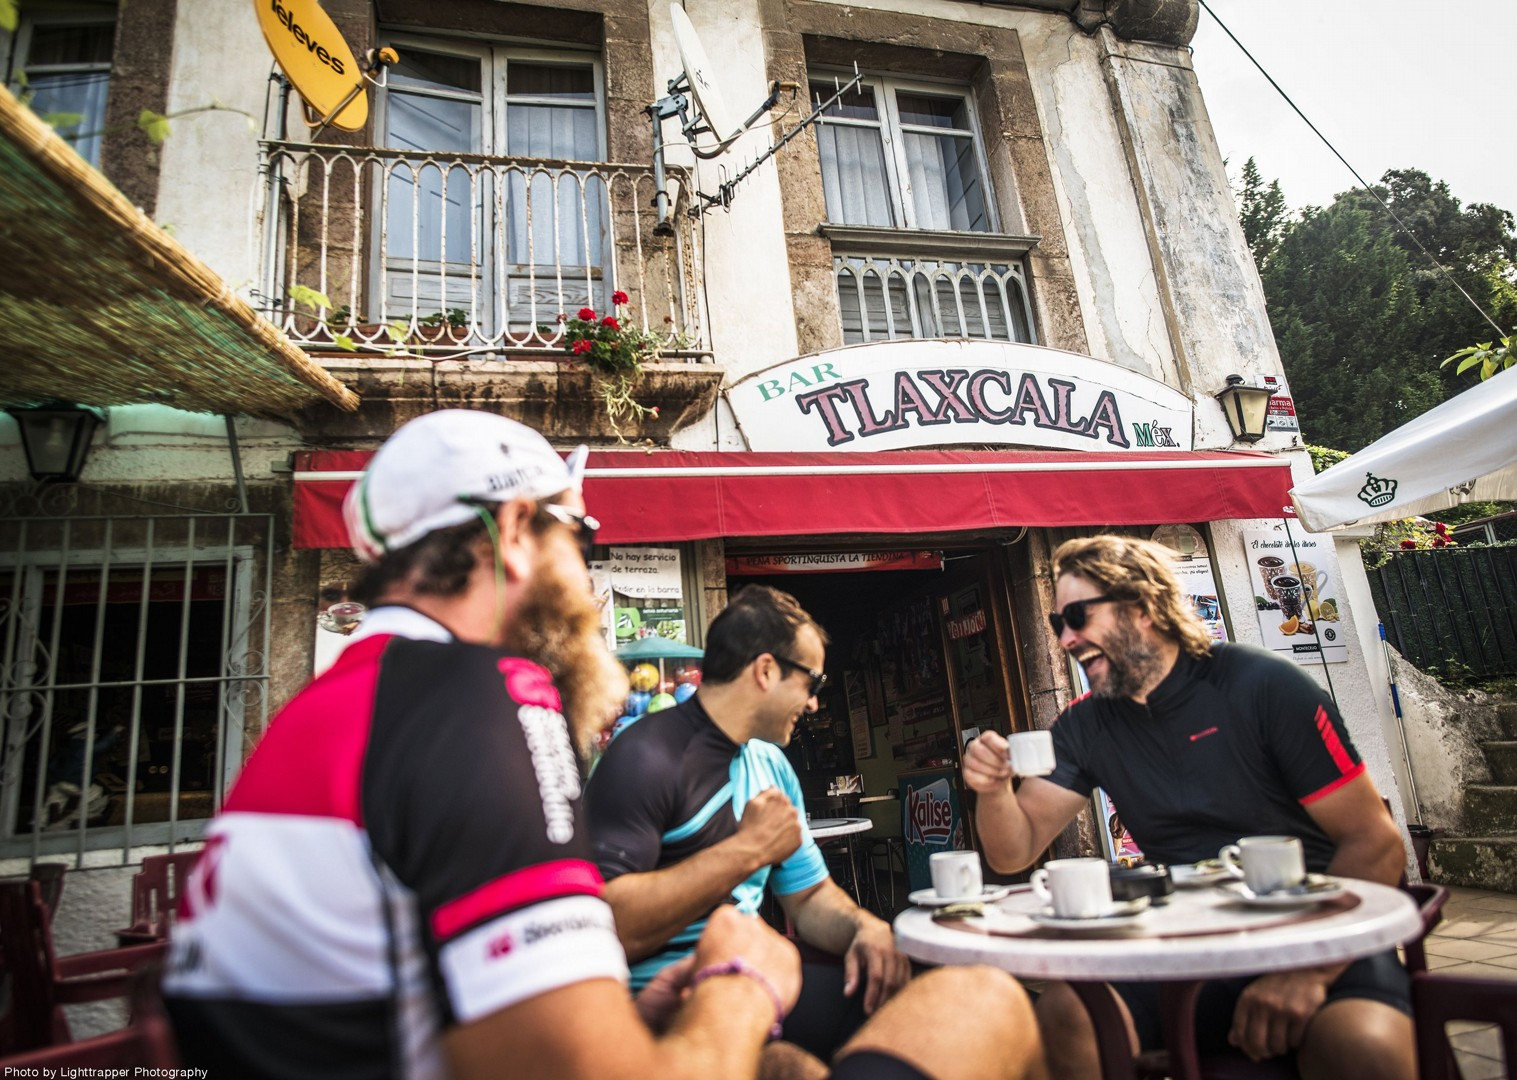 local-delicacy-churros-spanish-cafe-road-biking-holiday.jpg - Northern Spain - Road to Santiago - Guided Road Cycling Holiday - Road Cycling